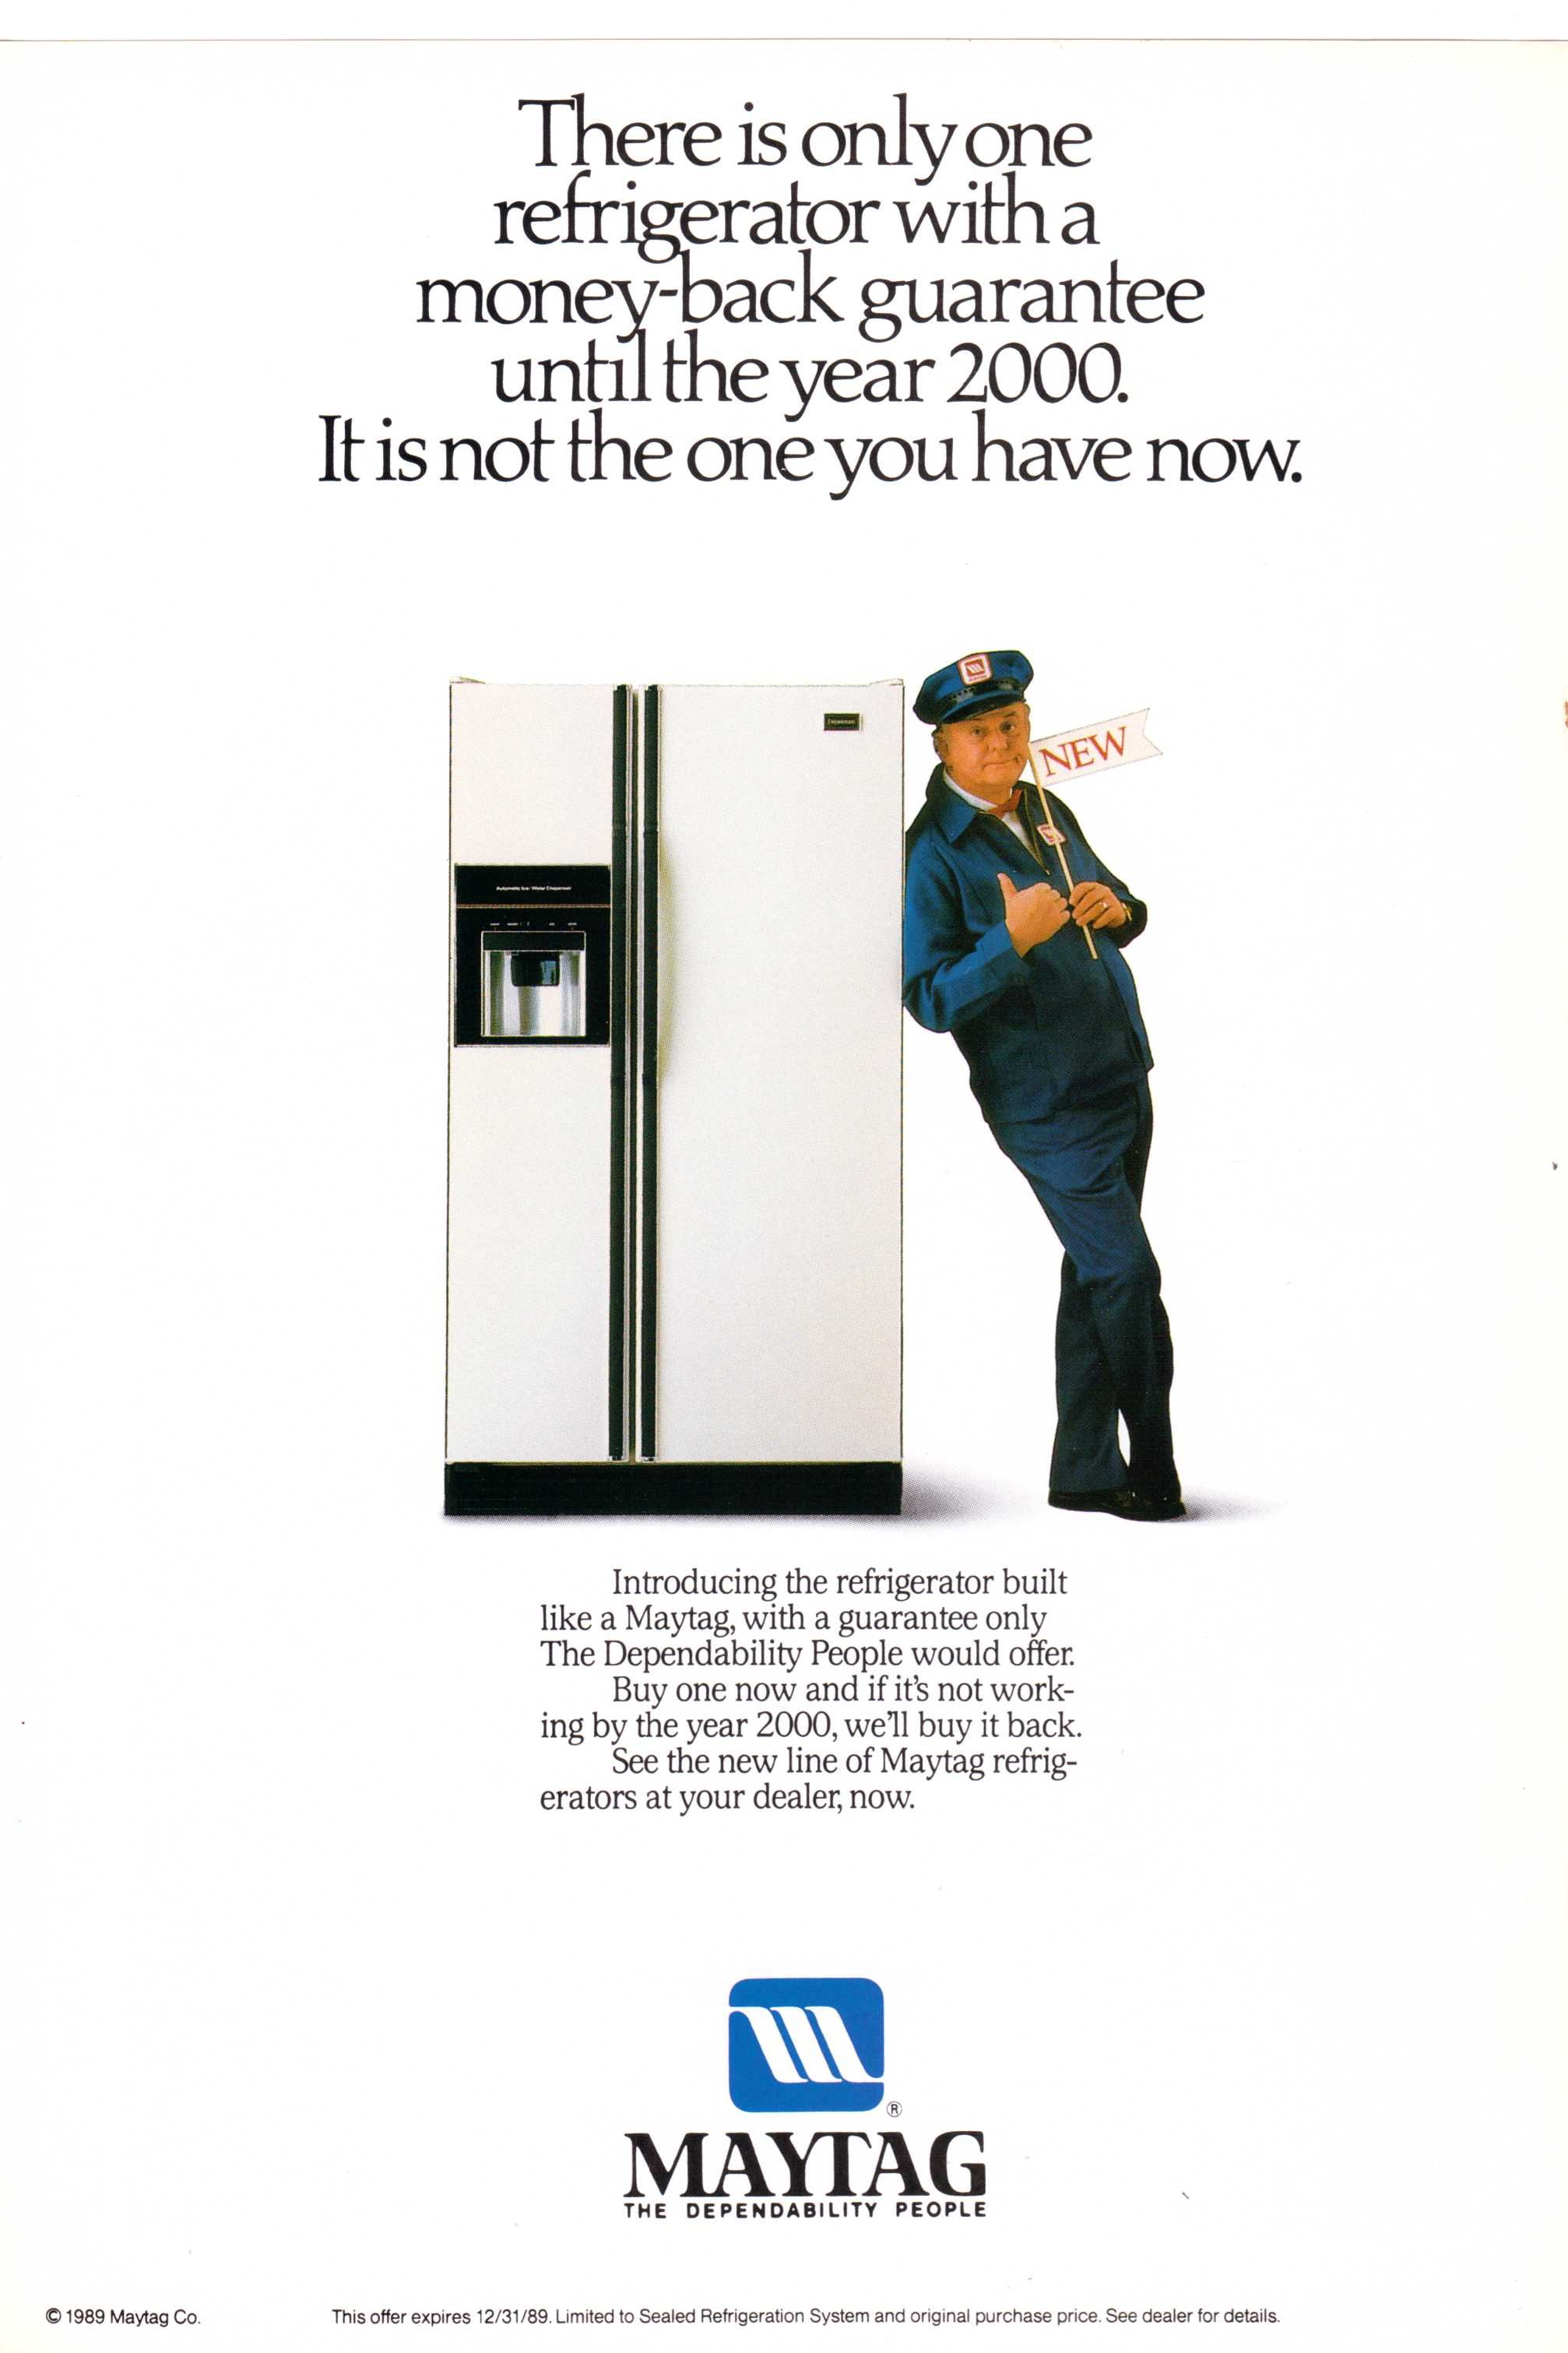 1989 Maytag Refrigerator Ad From National Geographic September